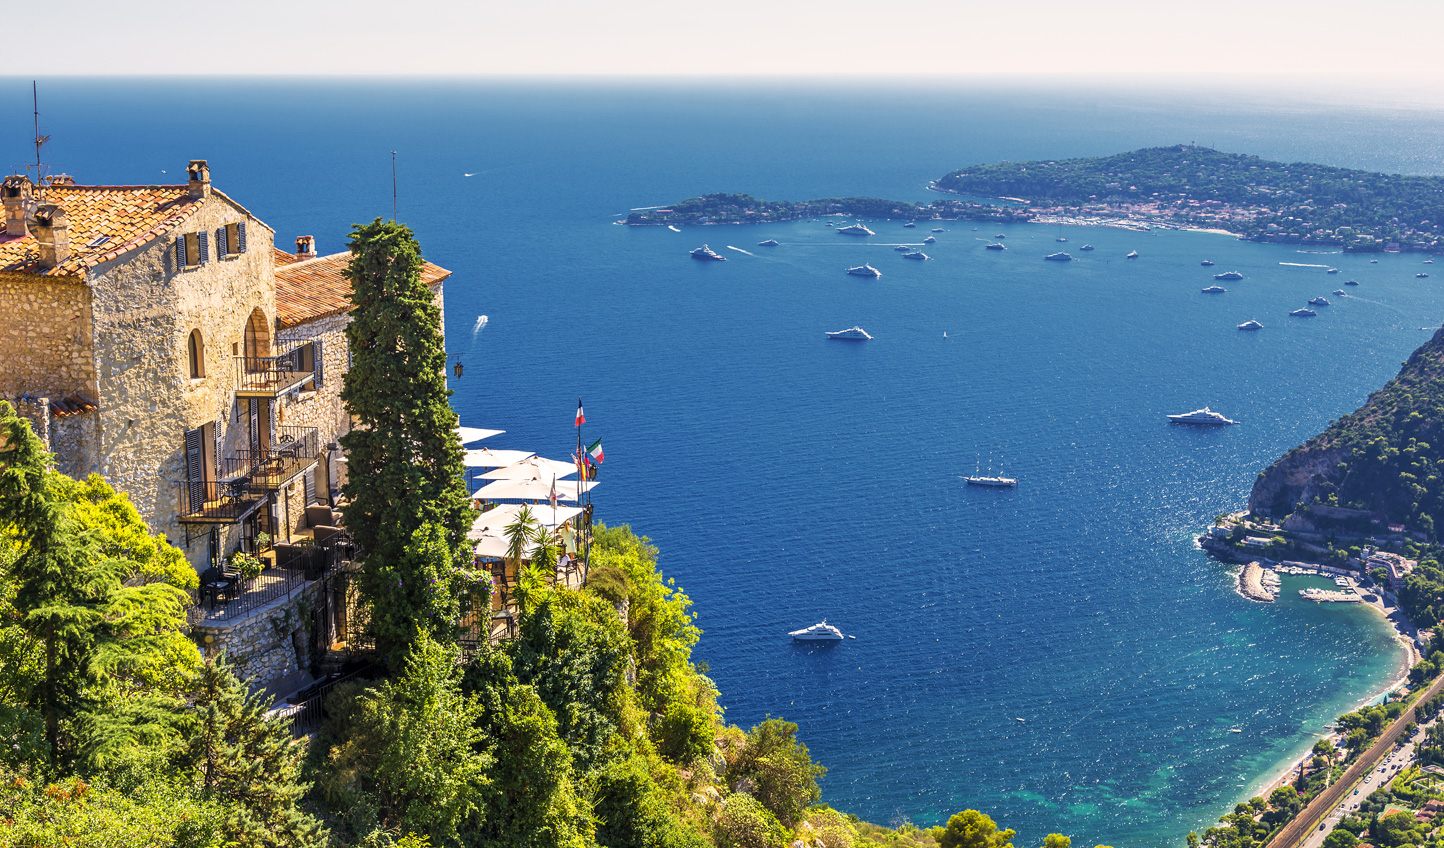 Finish your French adventure on Eze Bay on the dazzling Cote d'Azur